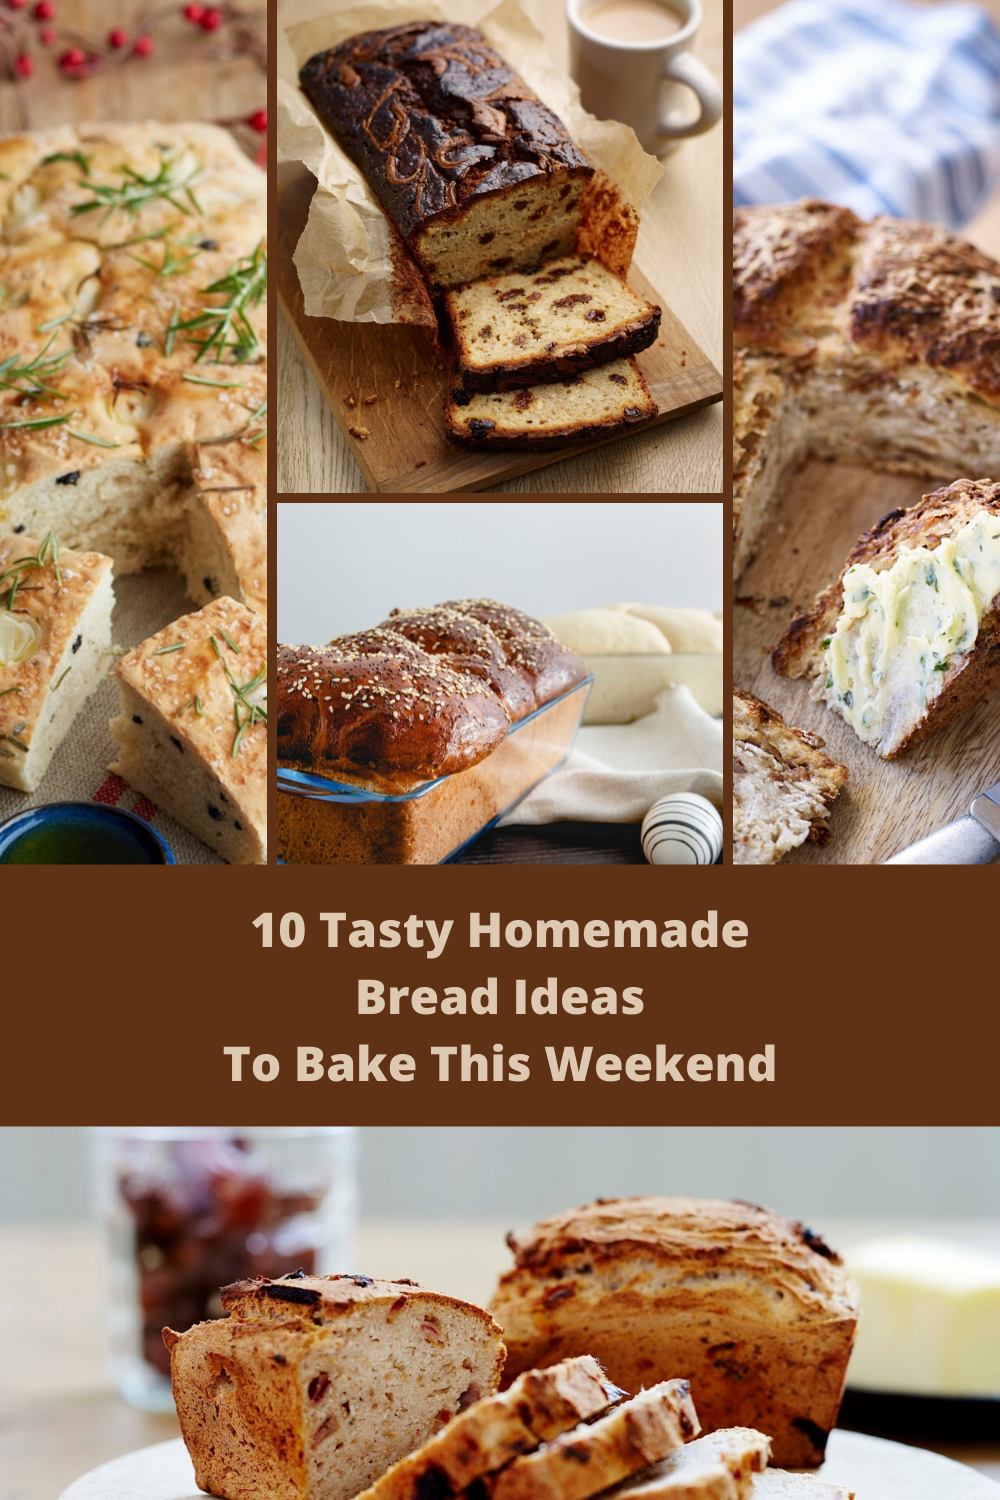 10 Tasty Homemade Bread Ideas To Bake & Link Up